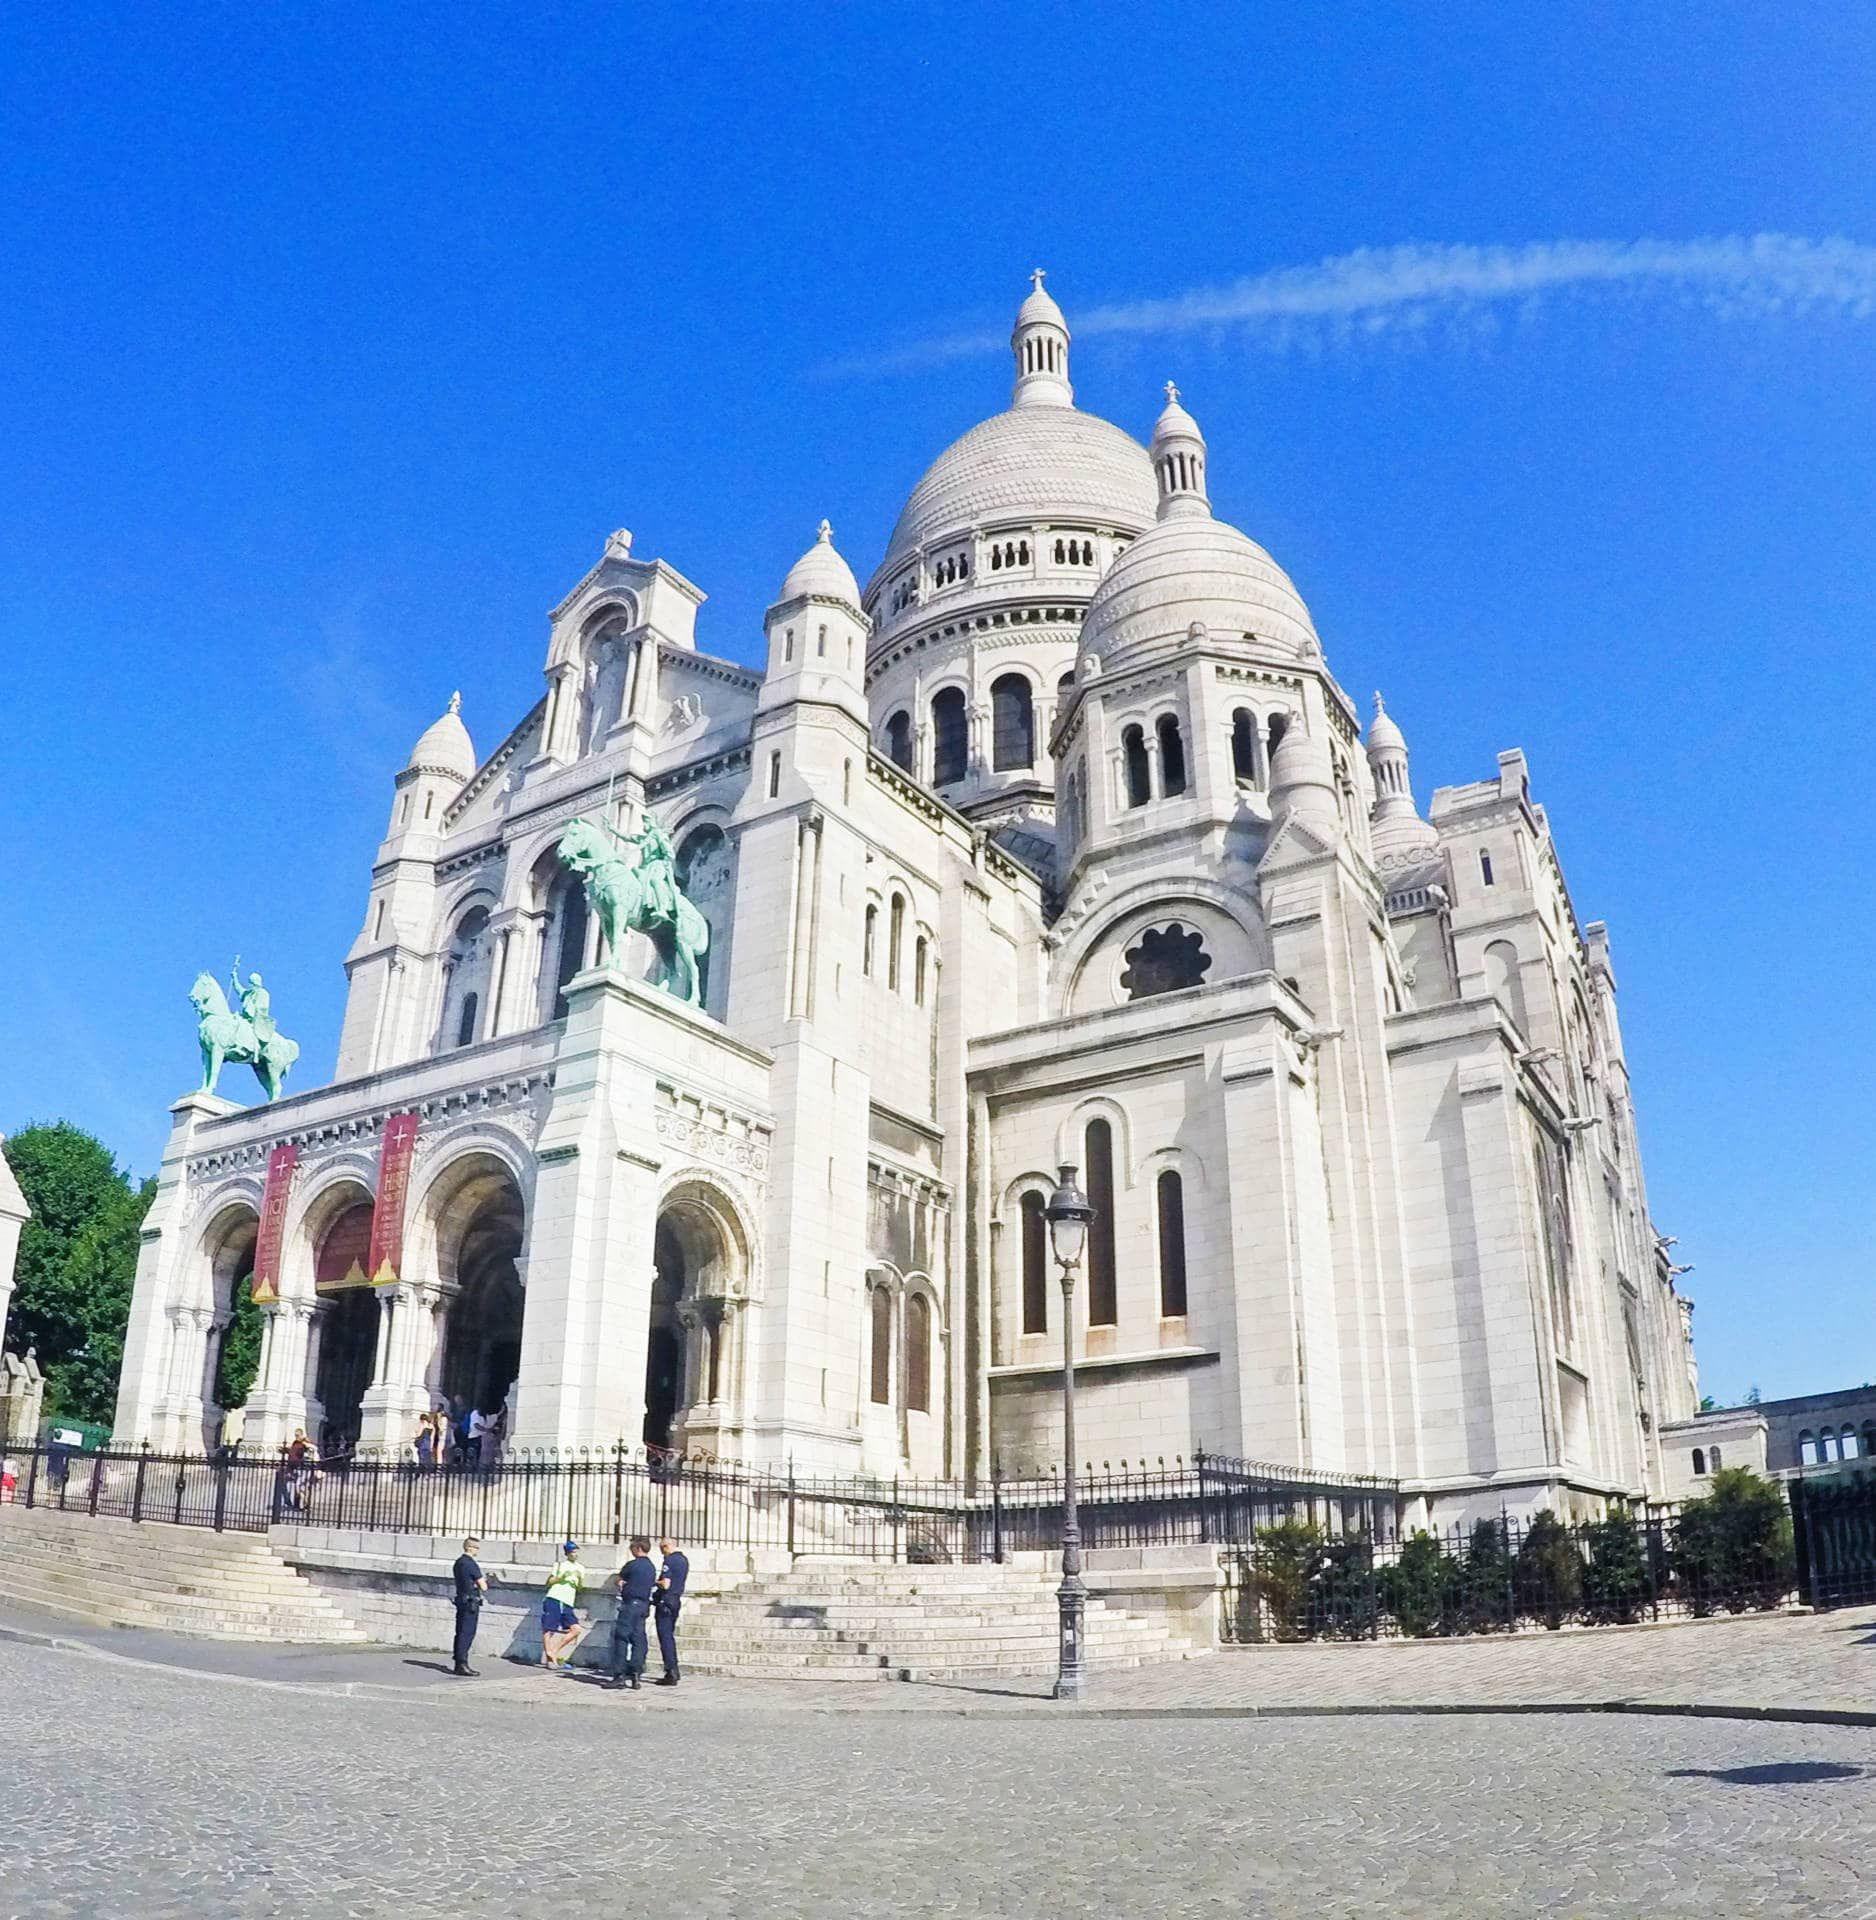 Paris Main Attractions In One Day: See In Paris In 2 Days Itinerary